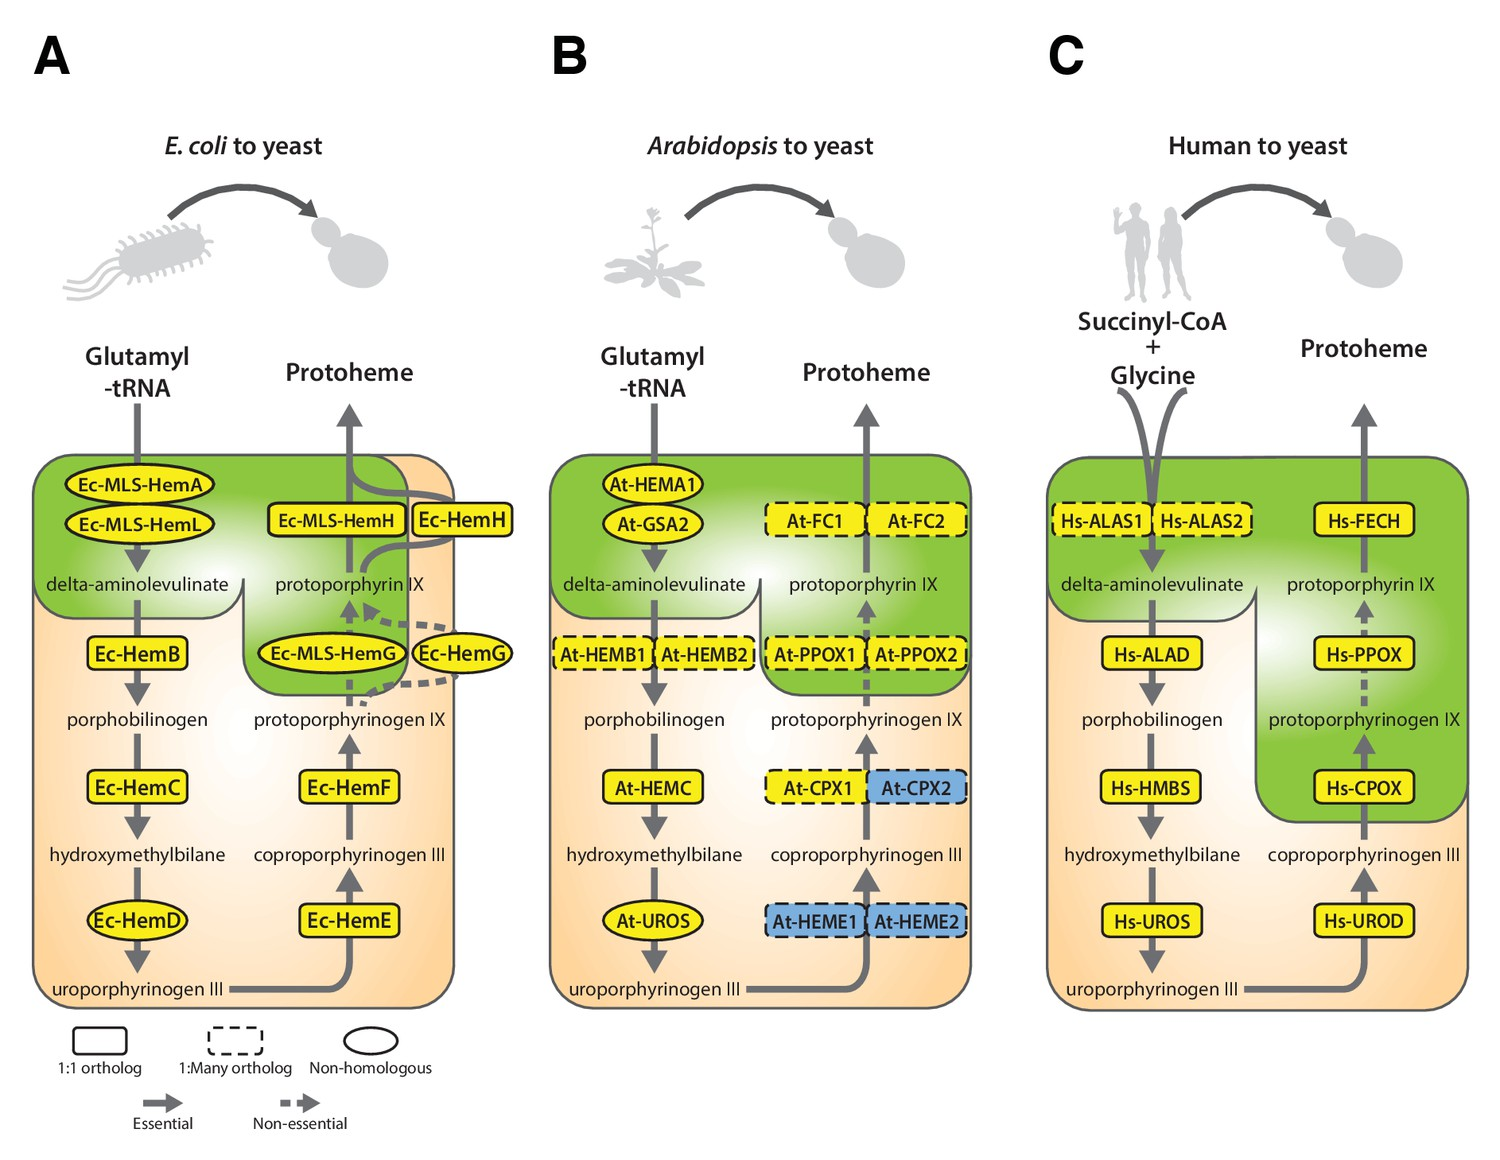 Systematic bacterialization of yeast genes identifies a near